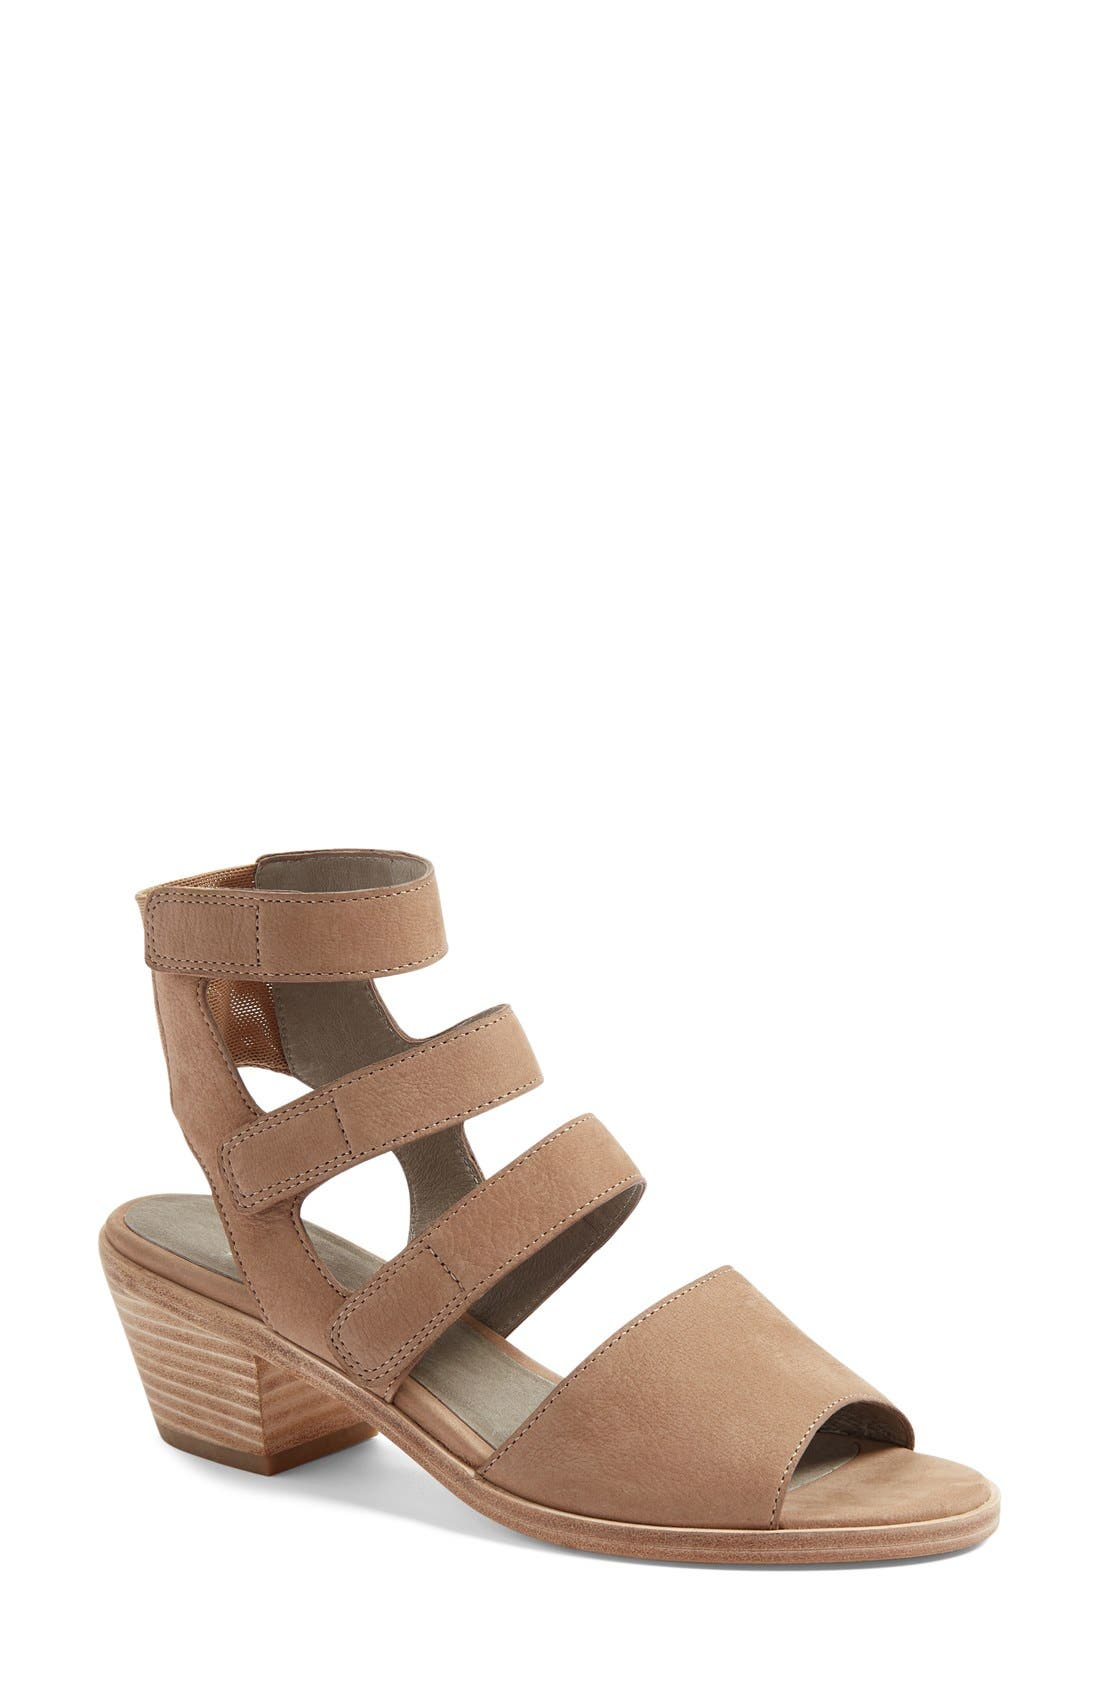 Vessey Strappy Sandal,                             Main thumbnail 1, color,                             Earth Leather